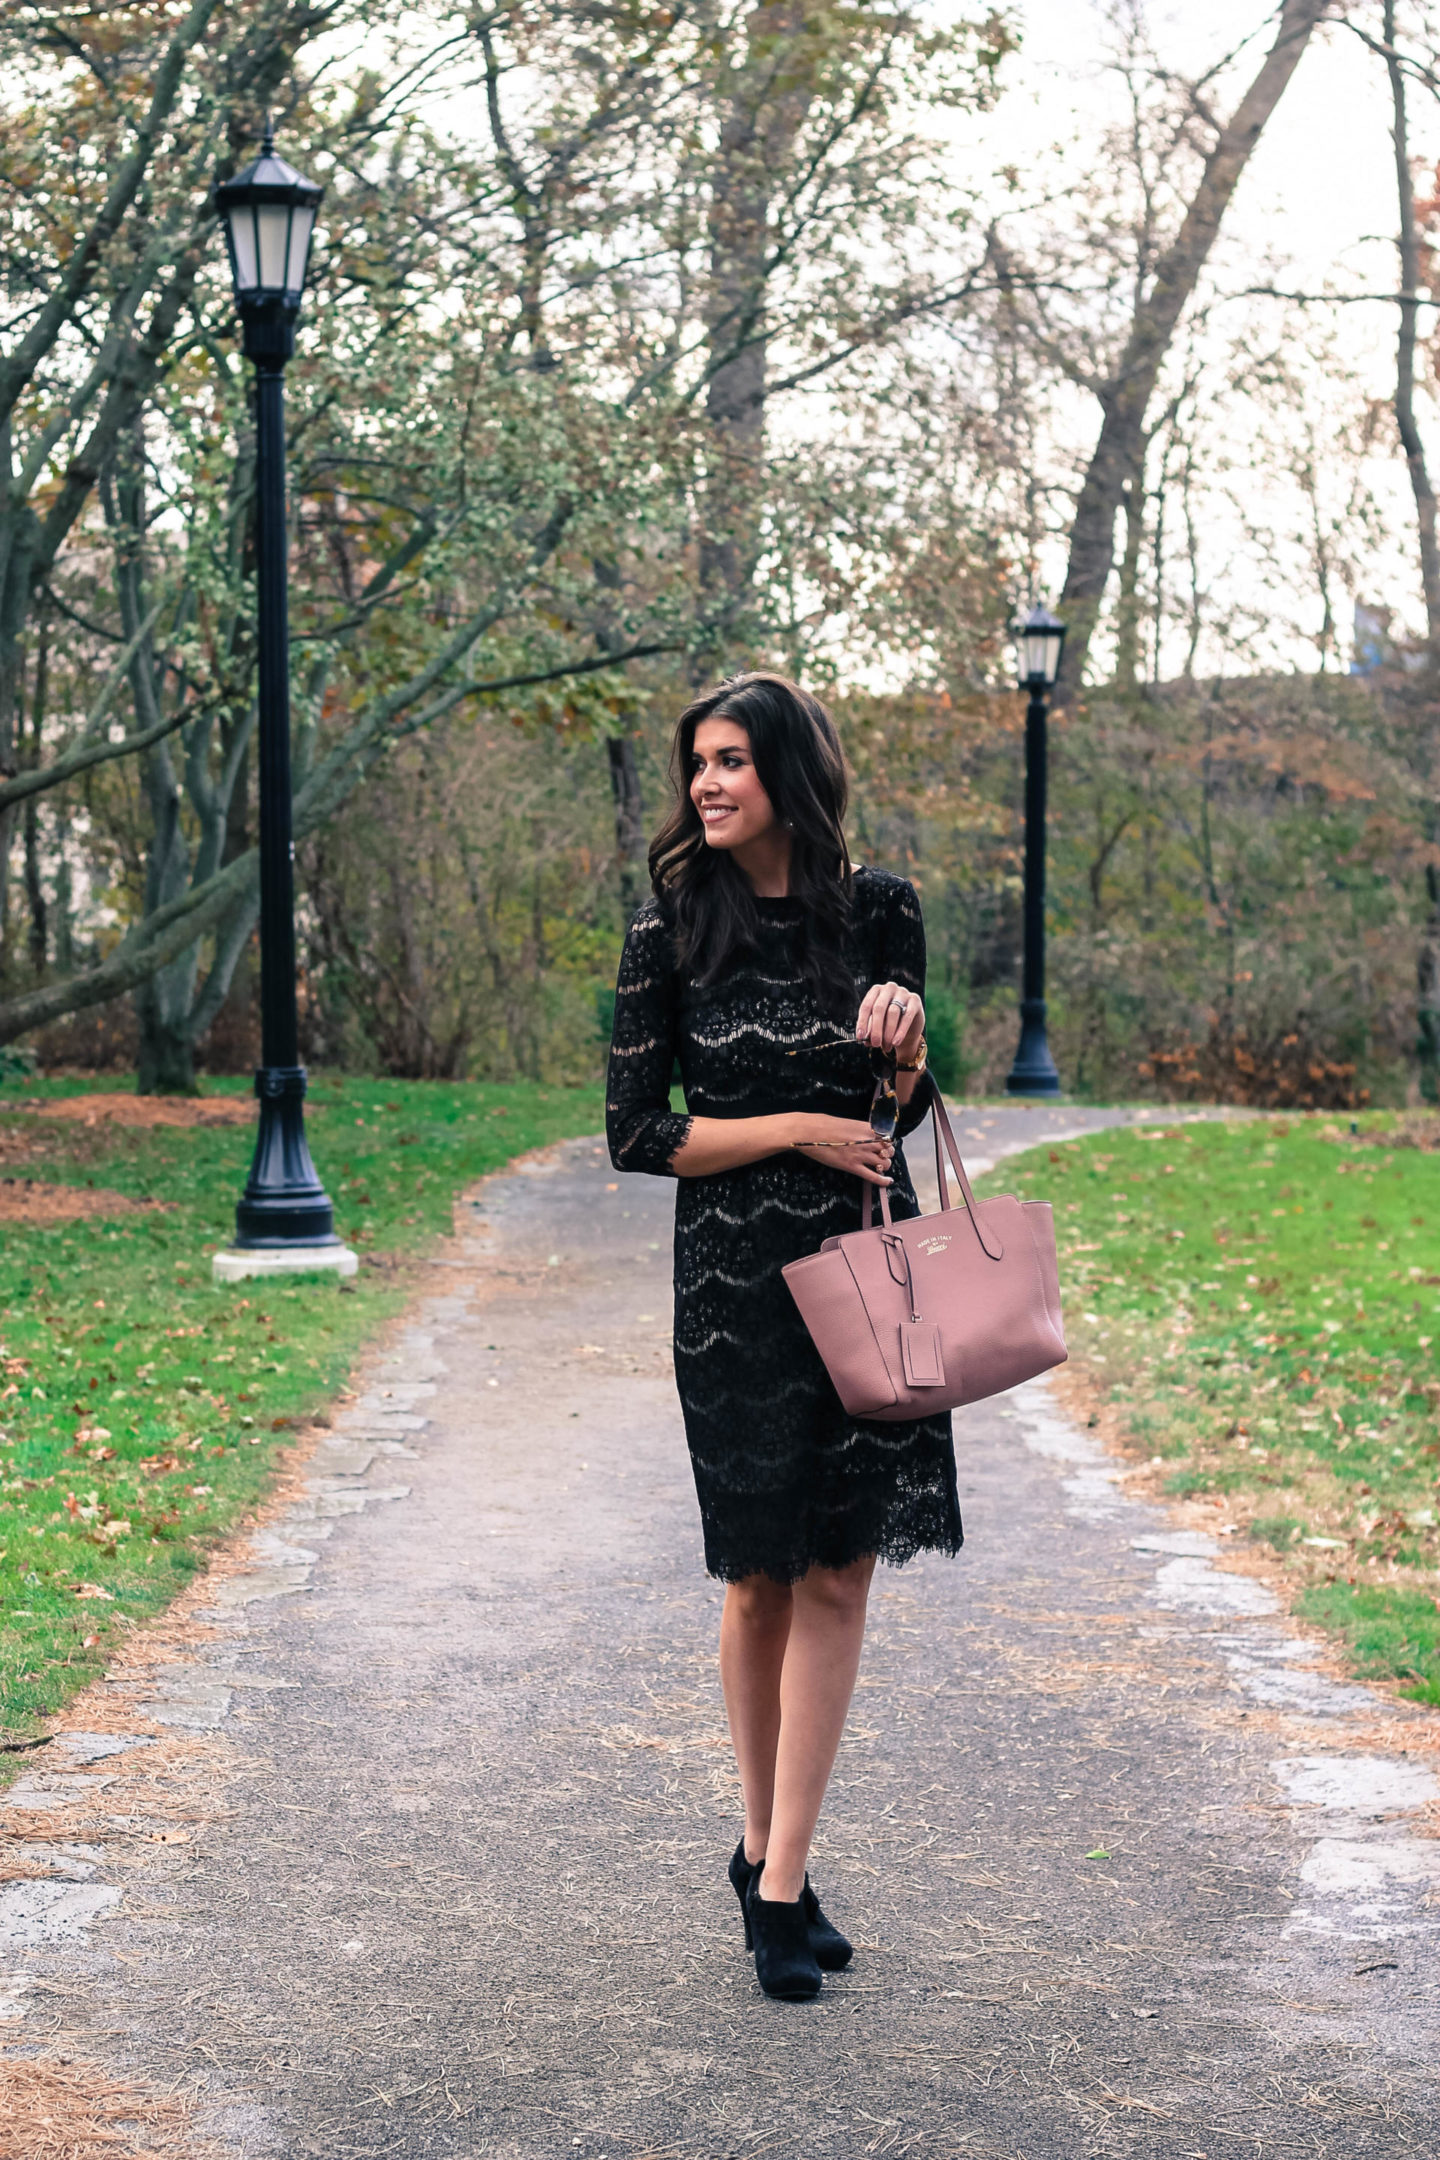 Black Lace Dress From Amazon - The Perfect Black Lace Midi Dress From Amazon by New York fashion blogger Style Waltz